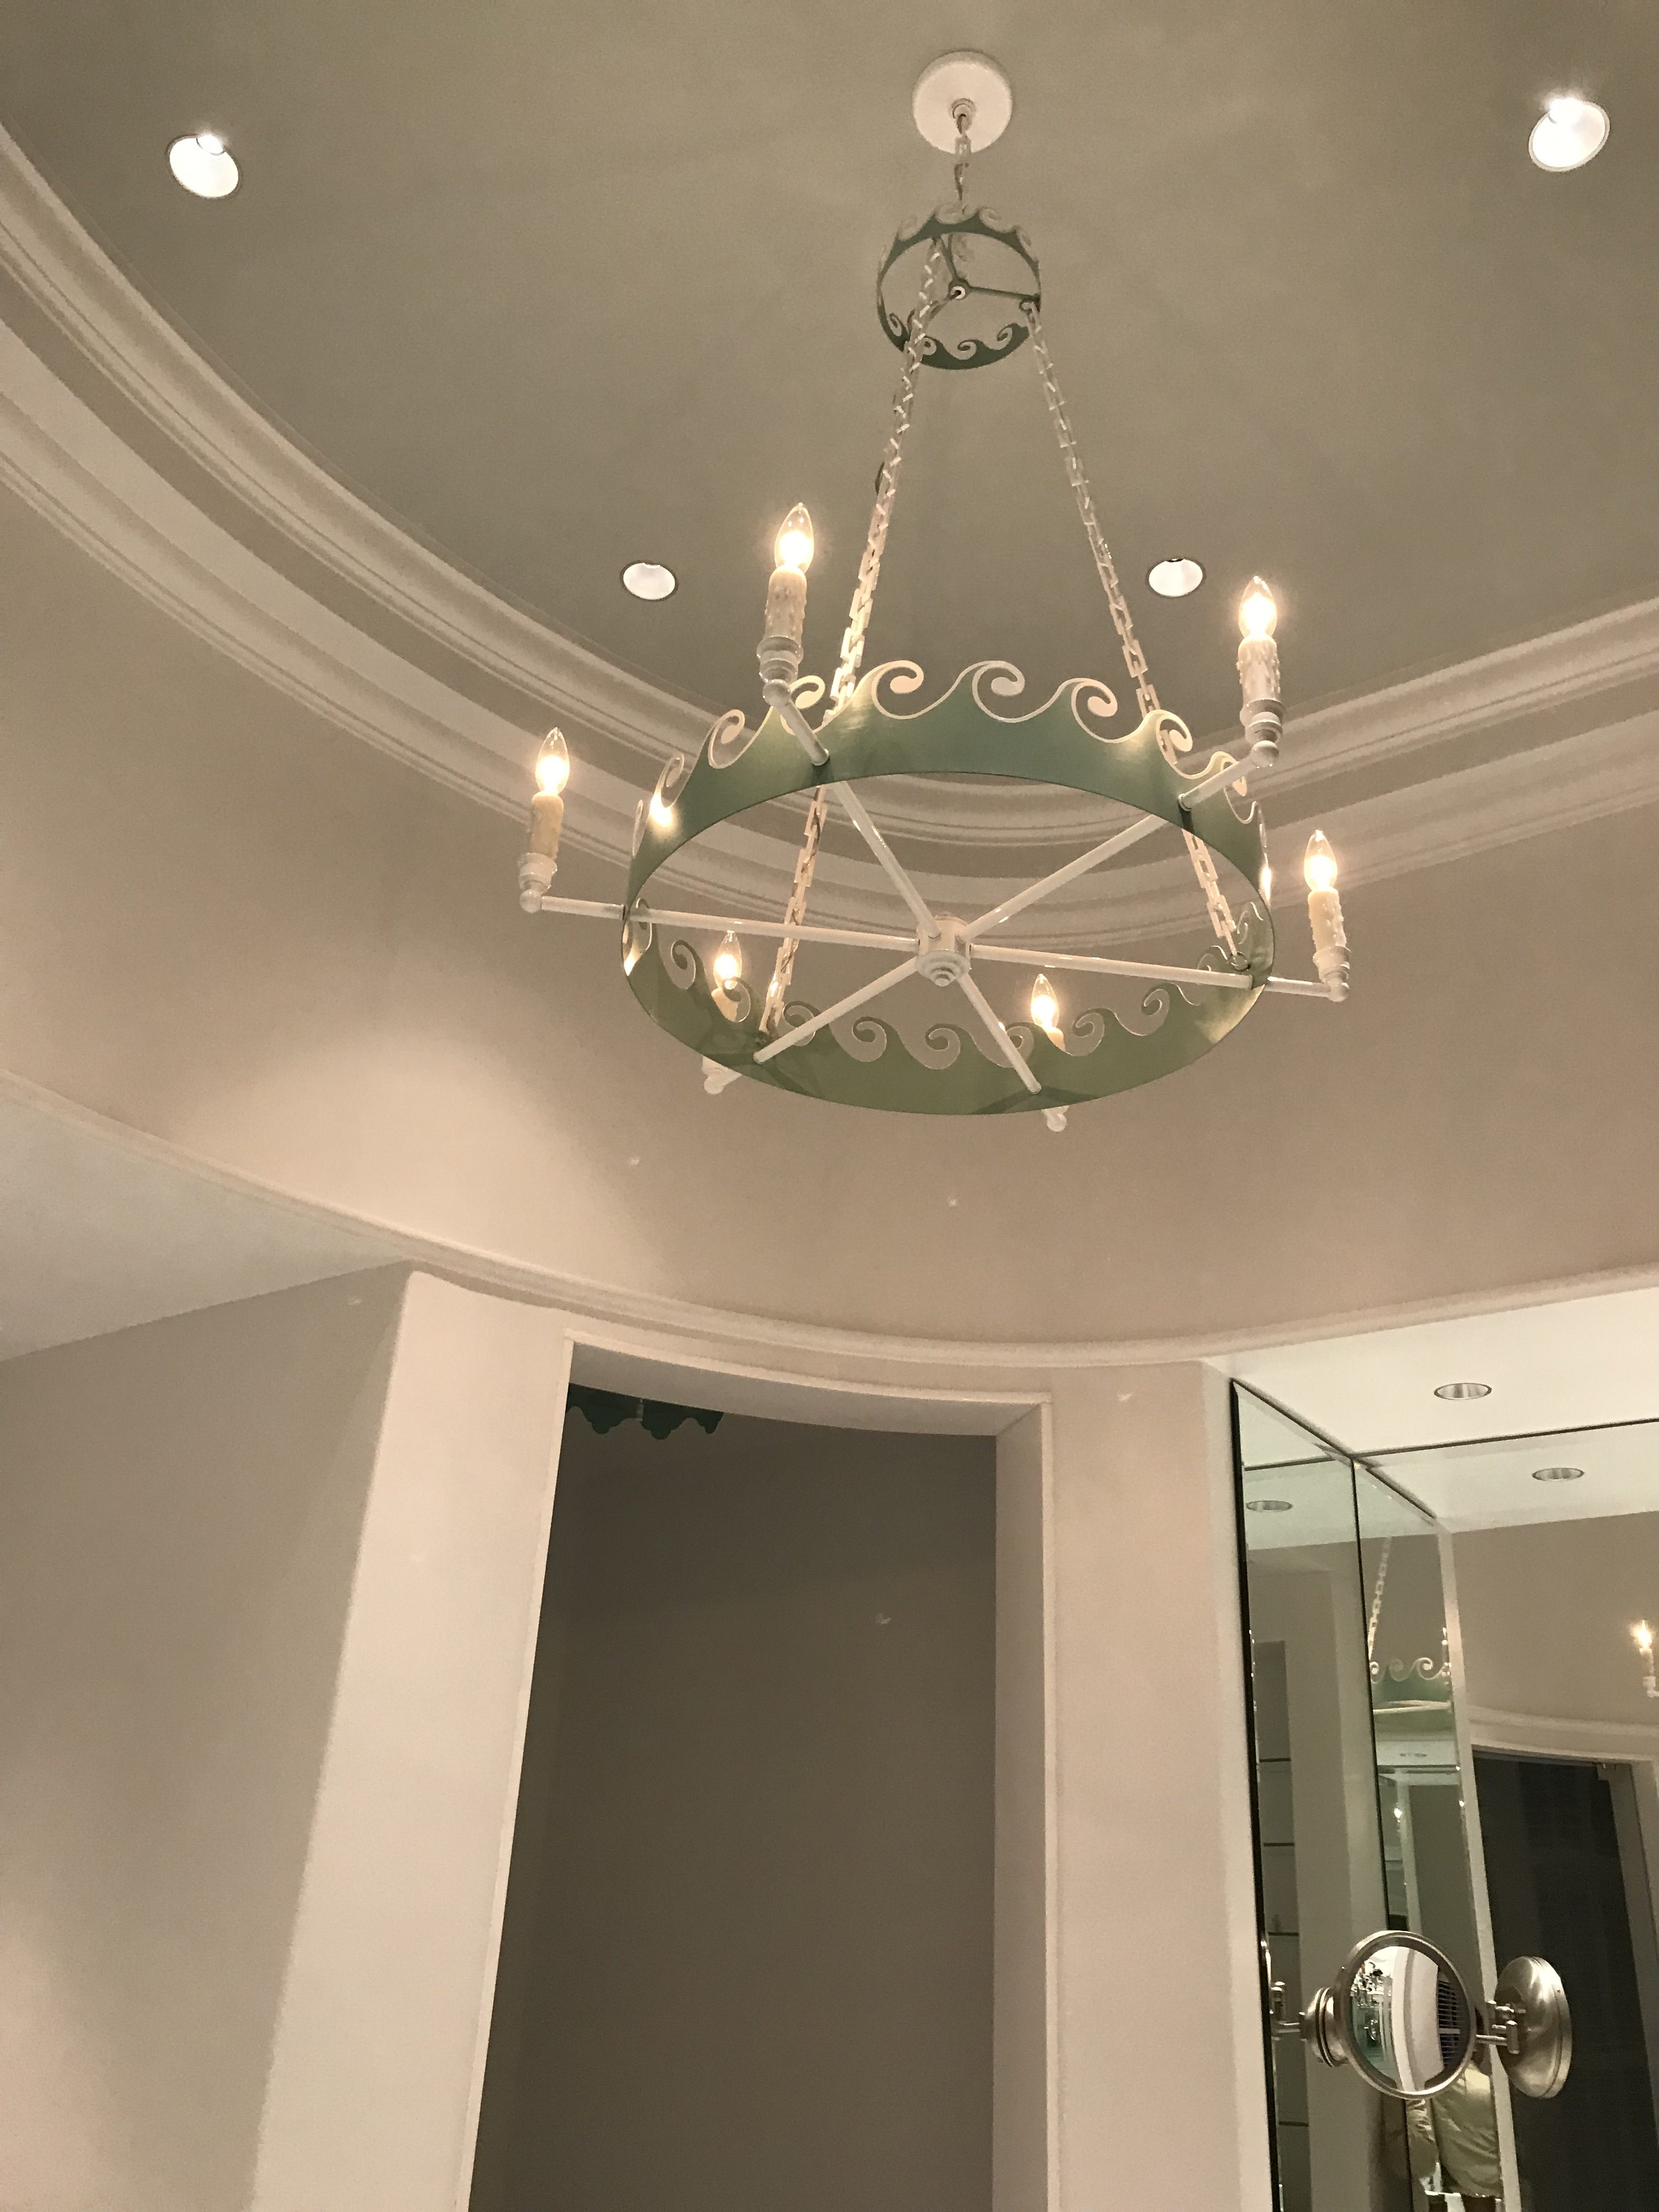 Decorative Beach Themed Chandelier Design Lighting Group